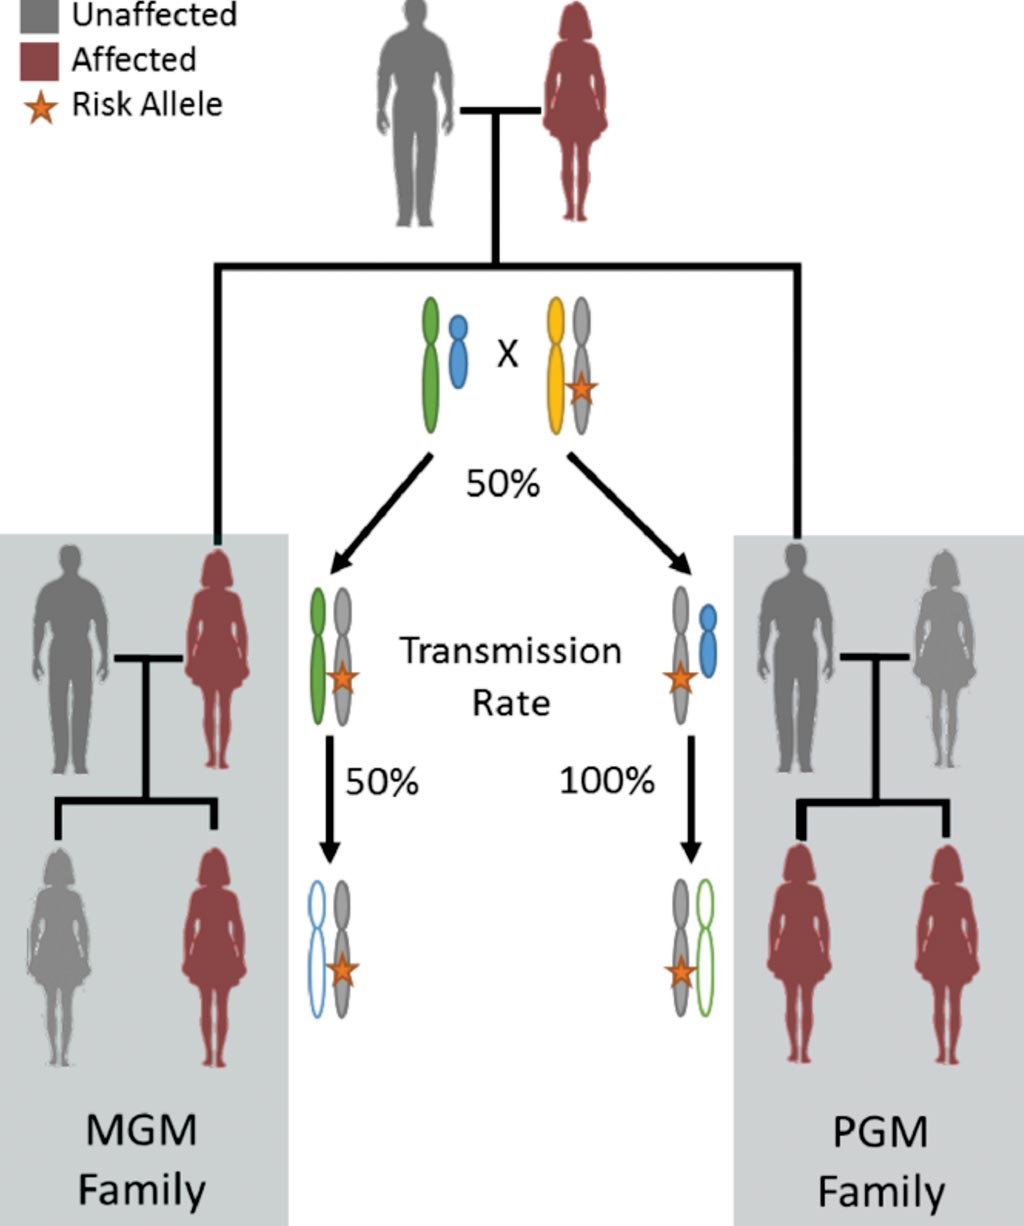 Image: Diagrams for X-linked inheritance when cancer status is specific to women (all carrier men are effectively disease censored). Two family patterns with a pair of first-degree affected women are the maternal grandmother (MGM) family and the paternal grandmother (PGM) family (Photo courtesy of Roswell Park Cancer Institute).